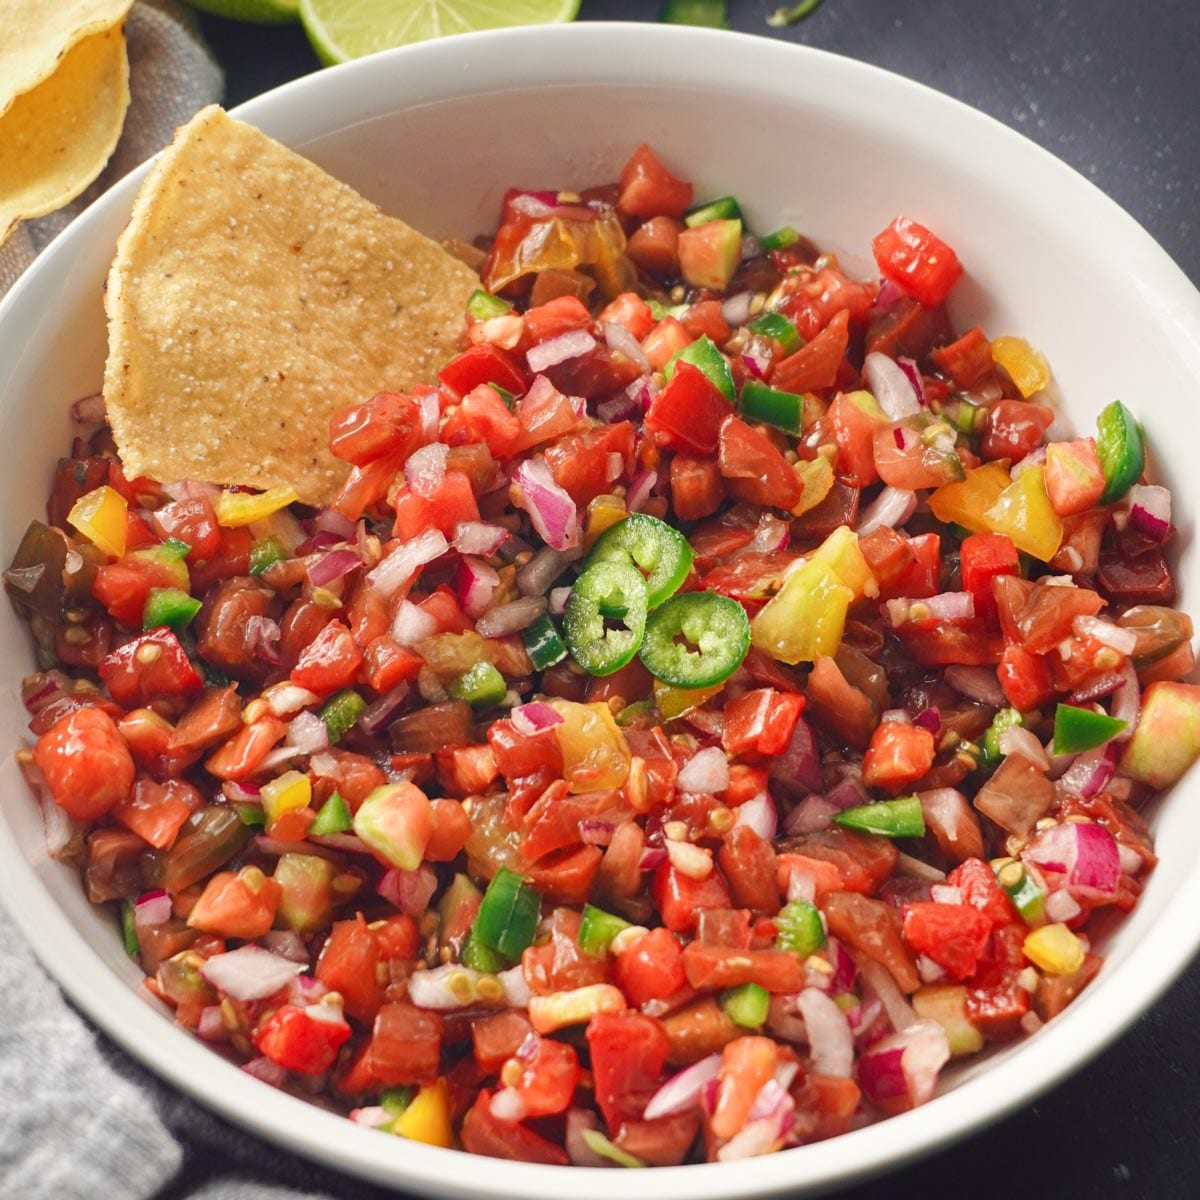 pico de gallo recipe (no cilantro!)